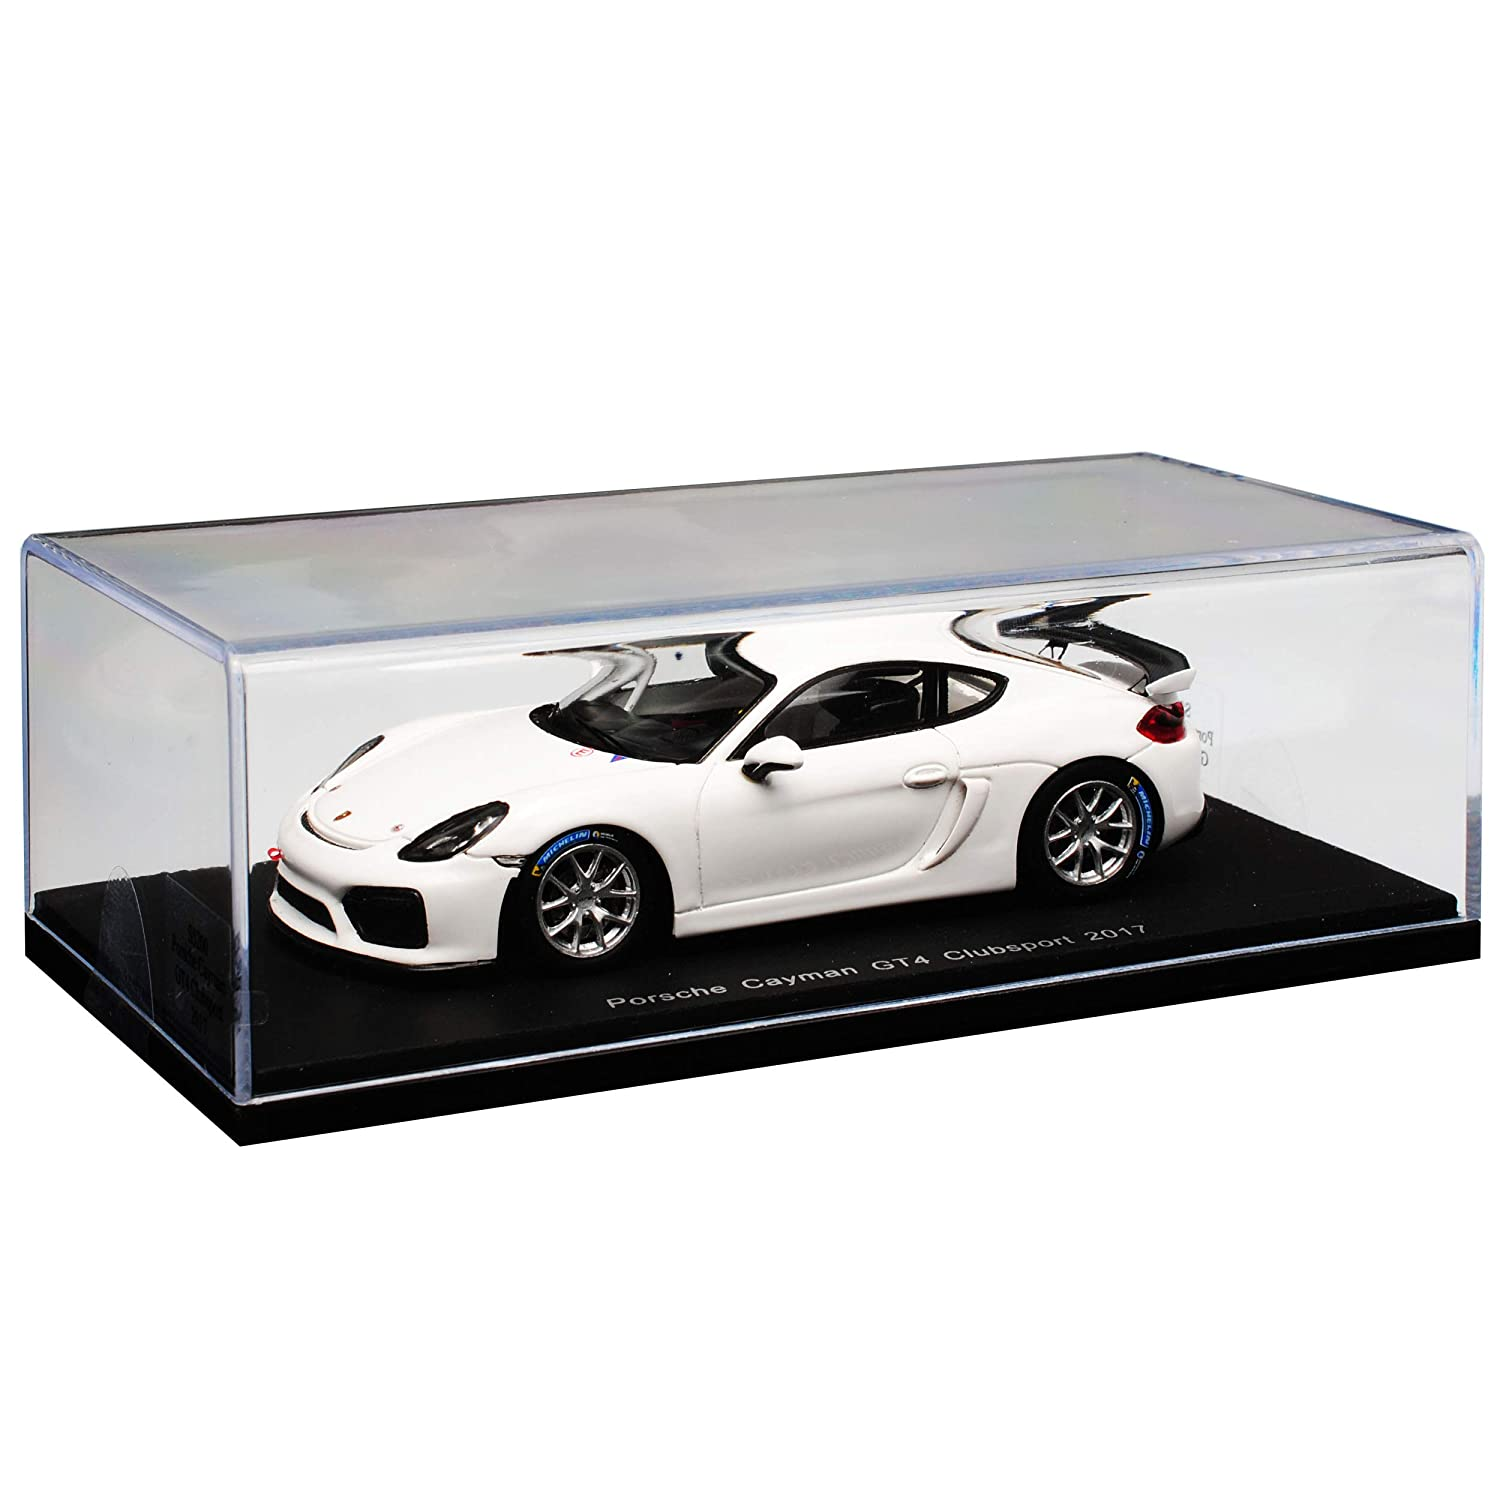 Spark Porsche Cayman 981 GT4 Clubsport Coupe Weiss Ab Ab Ab 2015 1/43 Modell Auto cd5723